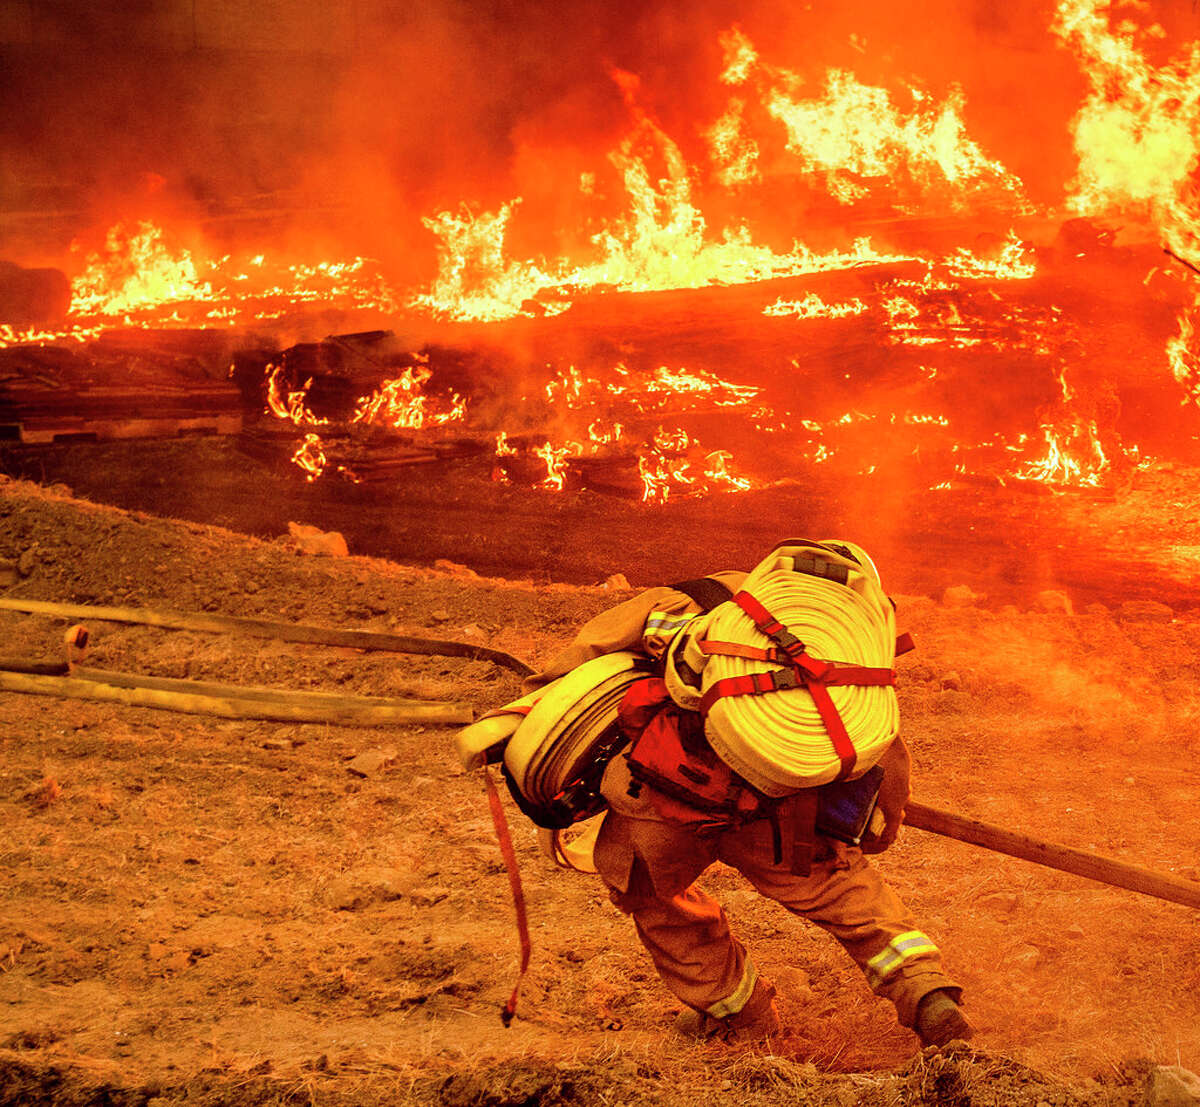 A firefighter carries a hose while battling the Glass Fire in a Calistoga, Calif., vineyard on Thursday, Oct. 1, 2020. (AP Photo/Noah Berger)